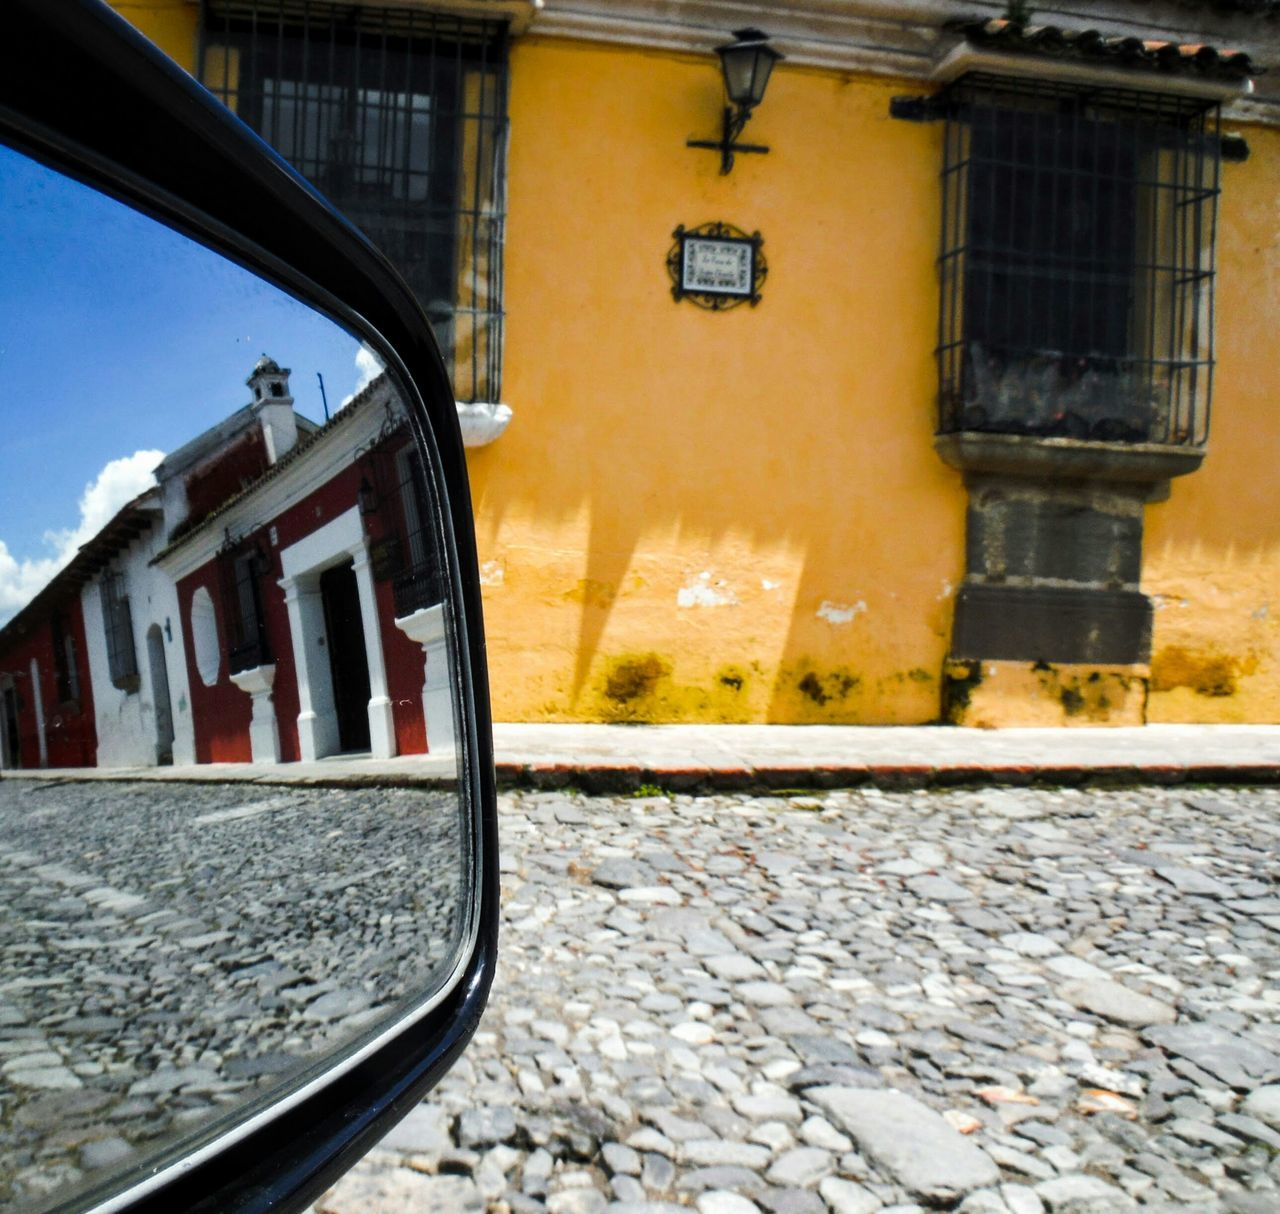 Portal. Different Perspective Mirror Reflection Cobblestone Streets Colonial Architecture Antigua, Guatemala Spanish Style Spanish Architecture Colonial Style Colonial Style Buildings Quaint  Street Photography New Perspective Perspective Photography Perspective Car Mirror Car Mirror View Cobblestone Cobblestones Cobbled Streets Cobbled Street Antigua Guatemala Optical Illusion Portal Better Look Twice The Drive